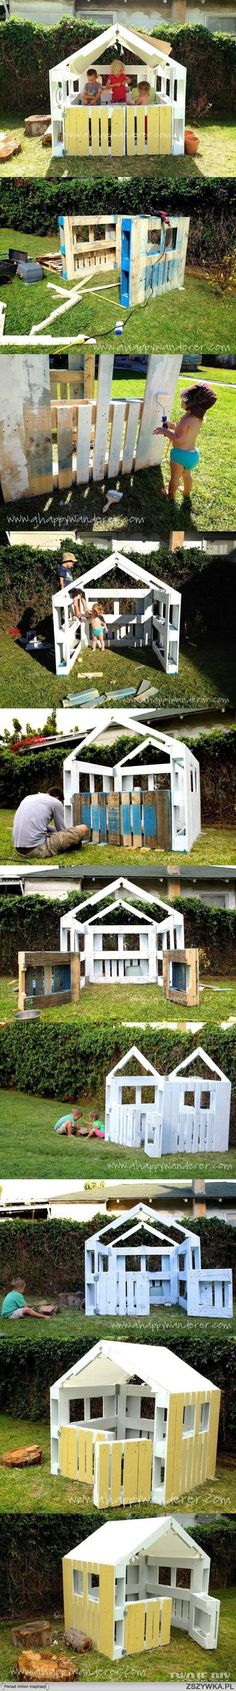 Ted's Woodworking Plans - c projet cabane pour baby Noé. quand il sera plus grand :-) Get A Lifetime Of Project Ideas & Inspiration! Step By Step Woodworking Plans Pallet Crafts, Pallet Projects, Diy Projects, Project Ideas, Diy Pallet, Pallet Ideas, Furniture Projects, Kids Furniture, Simple Playhouse